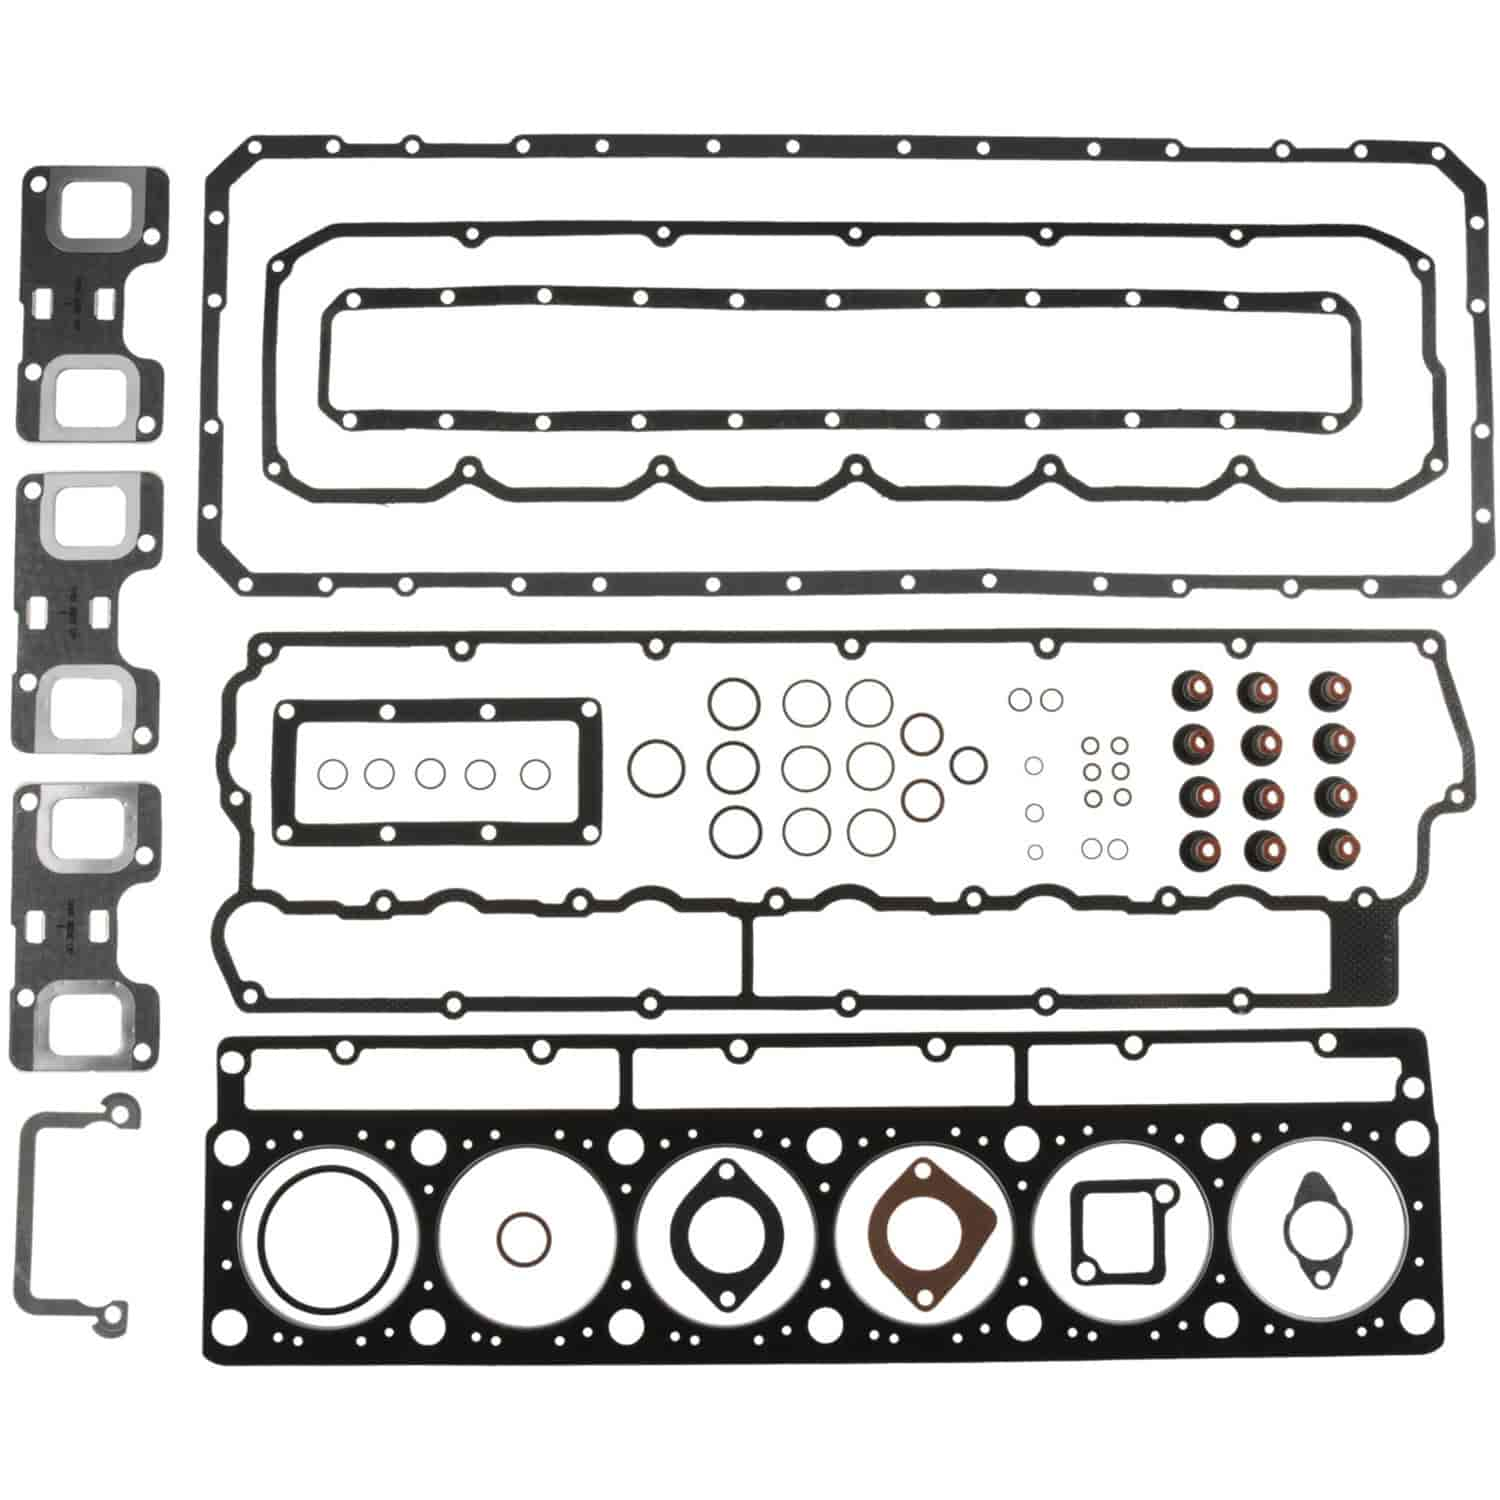 Clevite MAHLE In-Frame Overhaul Set Caterpillar 3116 Non Cover Plate Engine  - Pan Set OE# 2613816